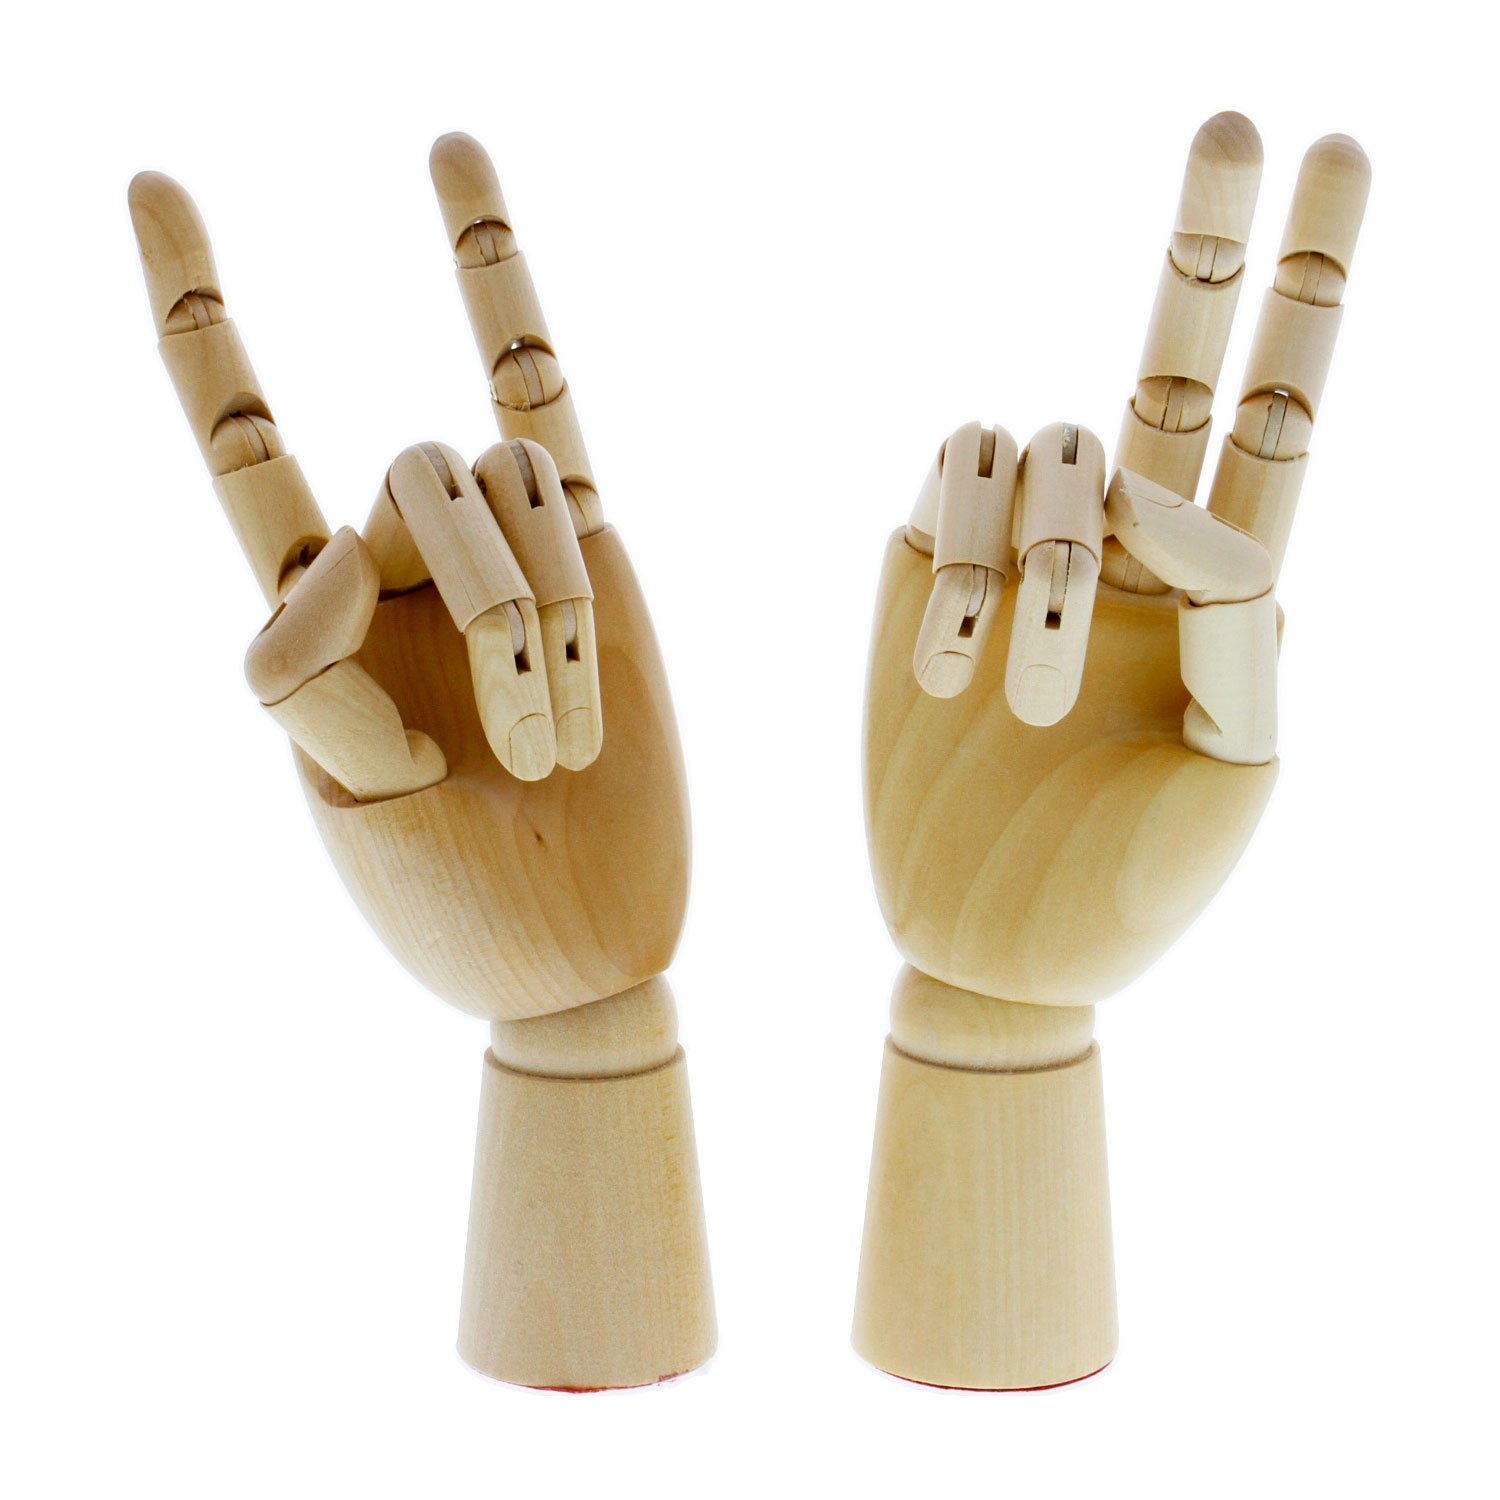 "US Art Supply Artist Drawing Hand Manikin Articulated Wooden Mannequin (Choose Size & Hand Type Below) (7"" Pair of Left & Right)"